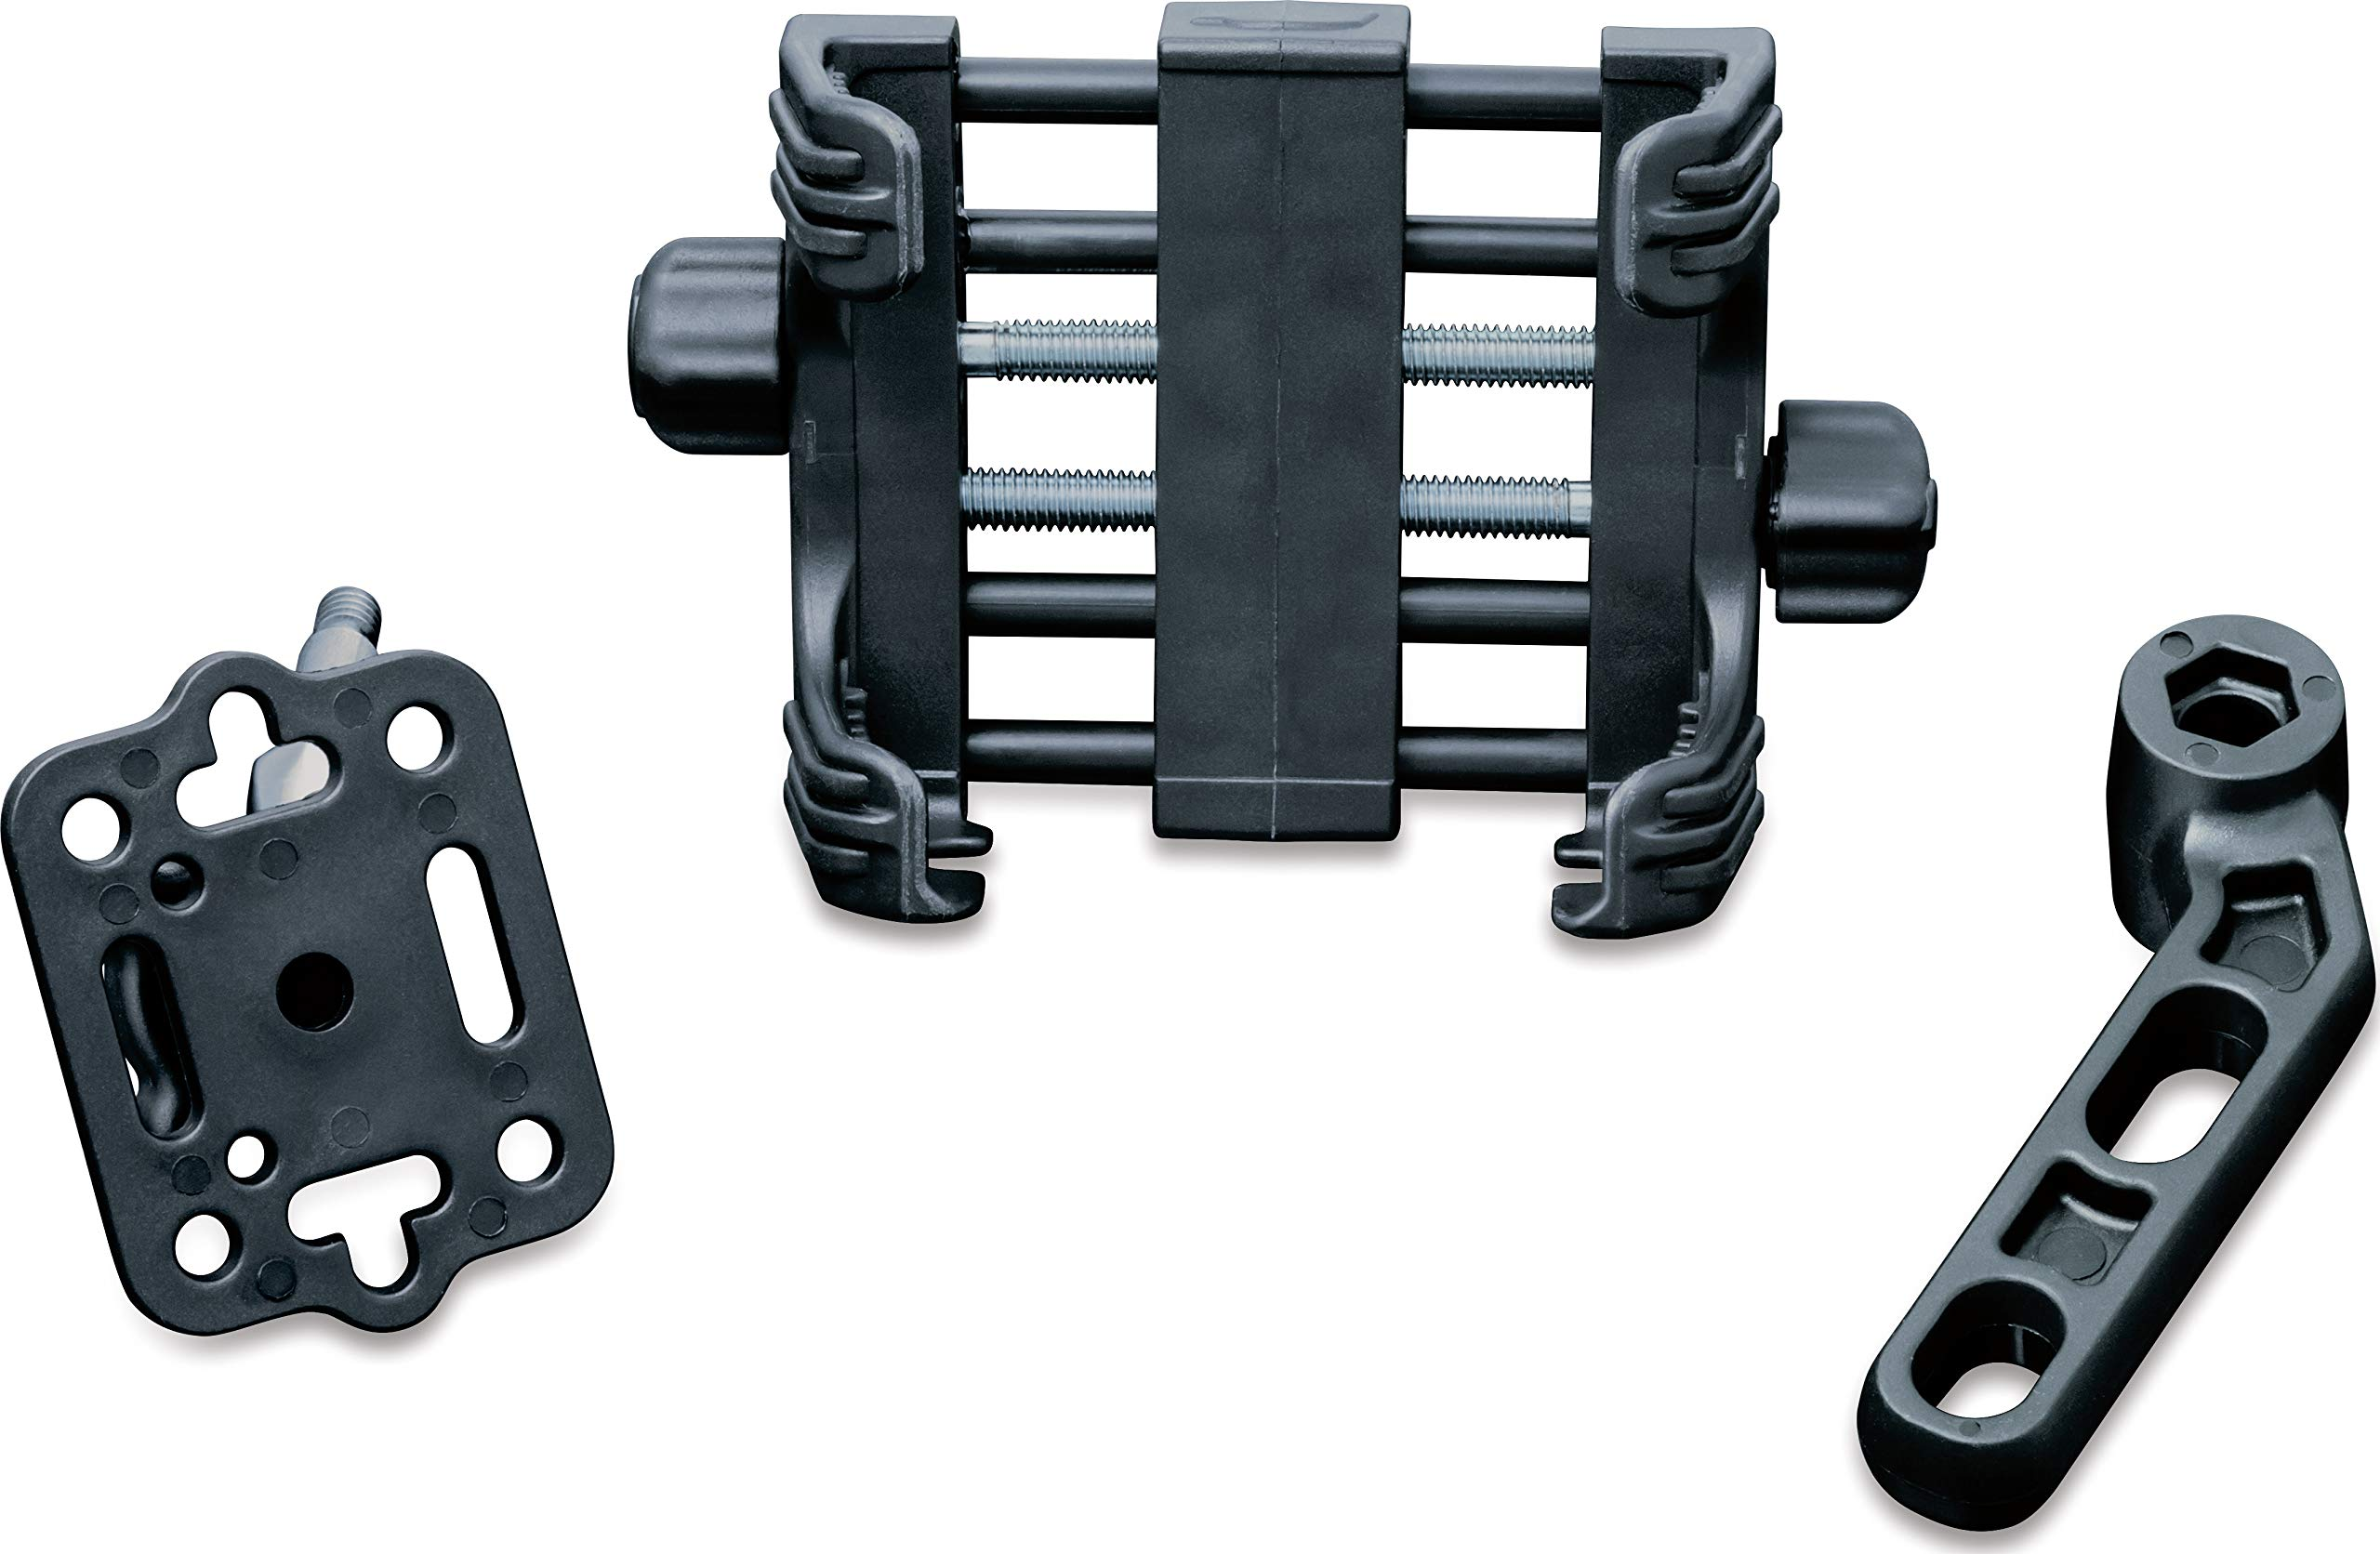 Kuryakyn 1676 Motorcycle Accessory: Clutch/Brake Perch Mount Tech-Connect Cradle GPS Device/Phone Holder Mounting Kit, Large, Black